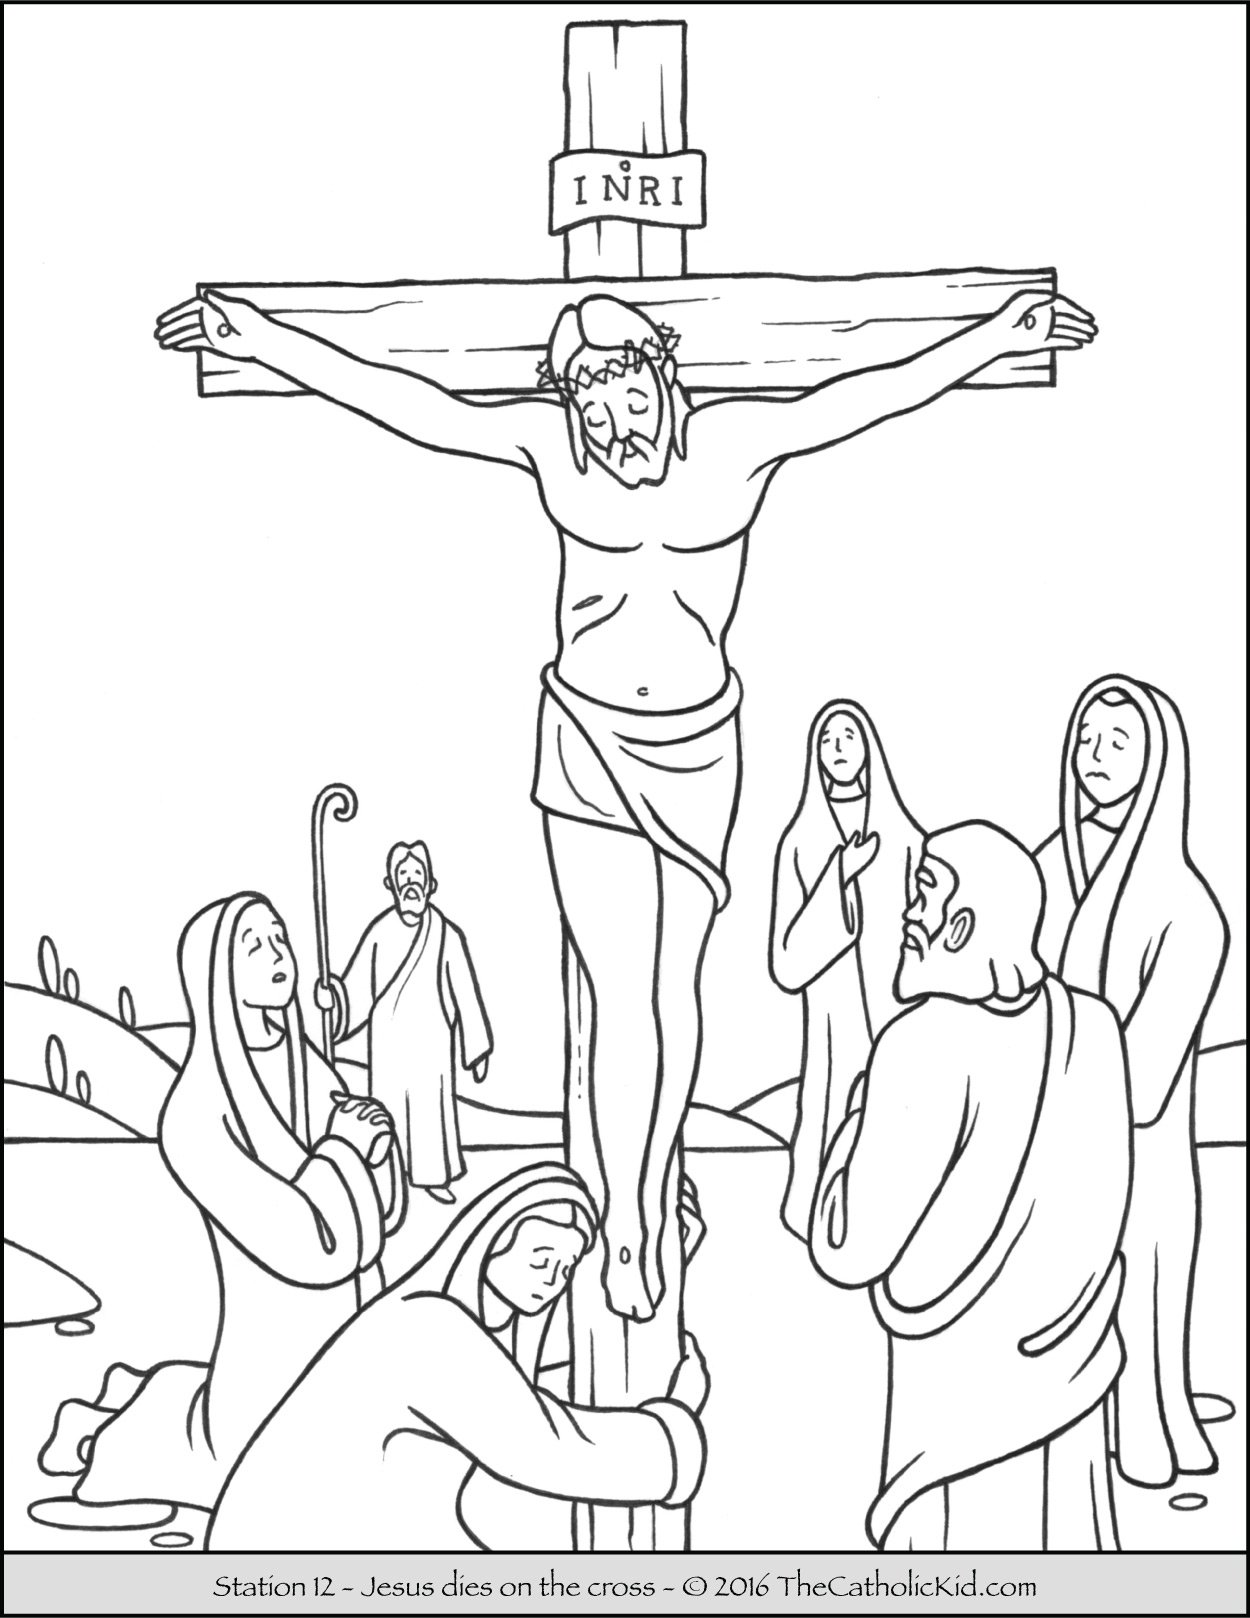 Stations Of The Cross Coloring Pages Delectable Stations Of The Cross Coloring Pages  The Catholic Kid Inspiration Design